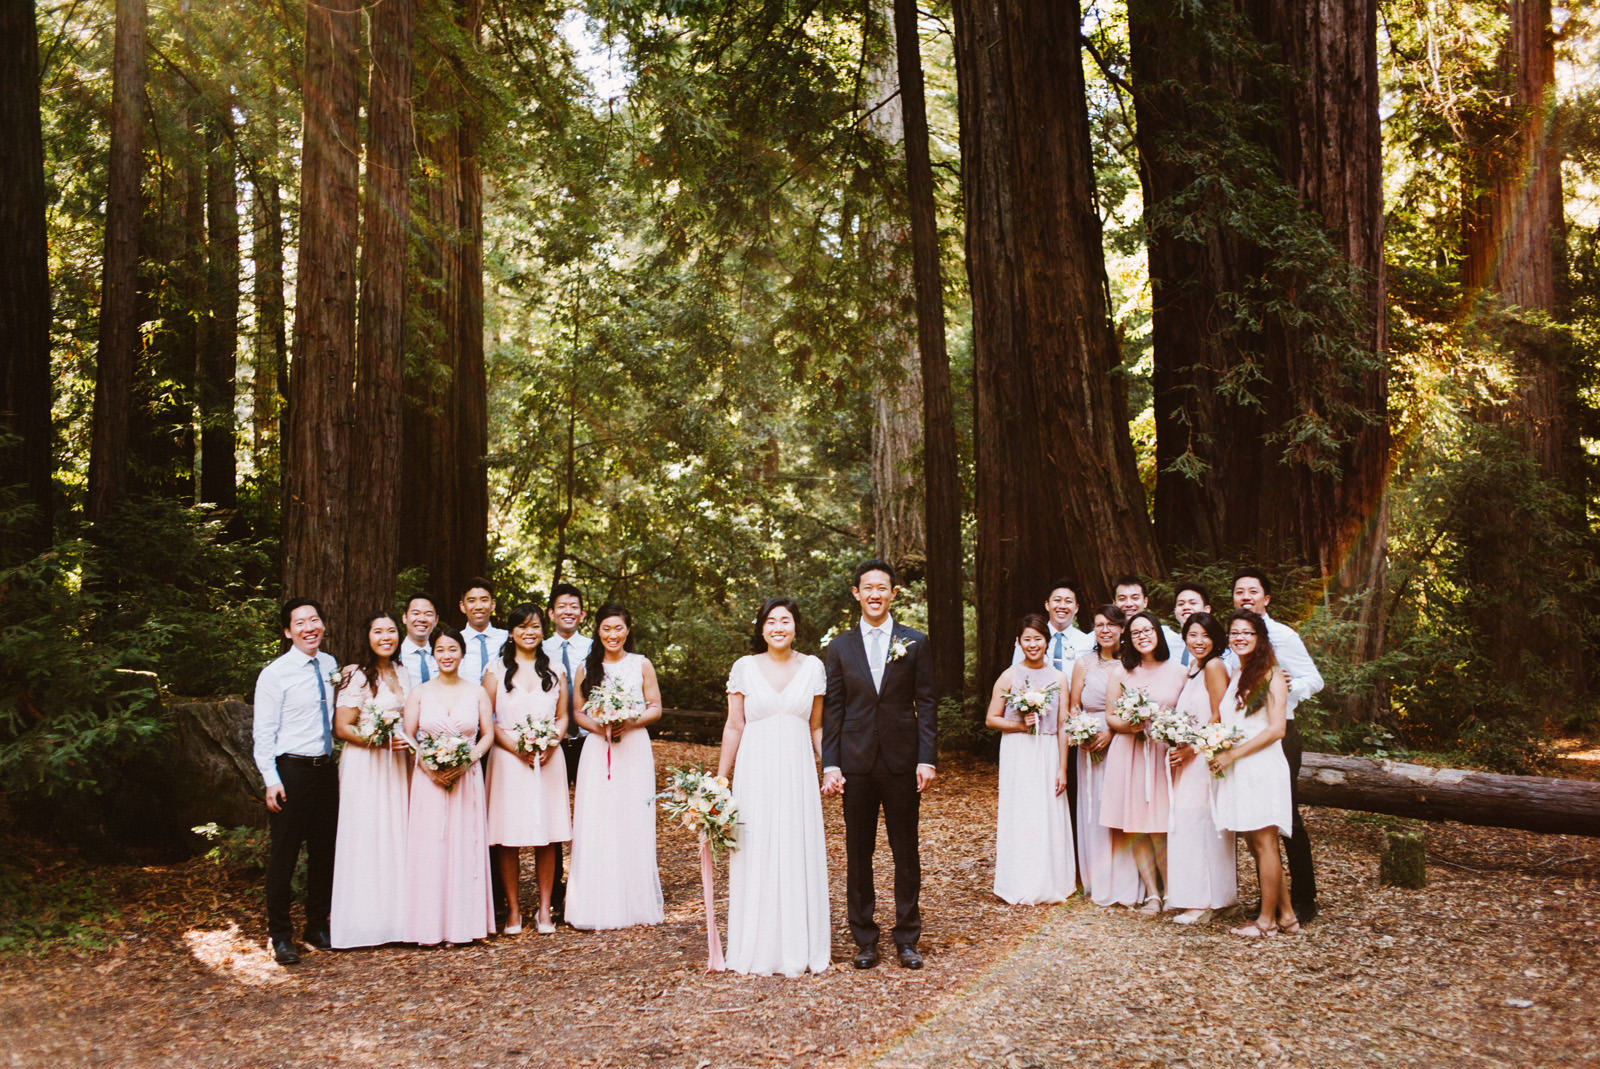 kimclay-blog-011 REDWOOD FOREST WEDDING